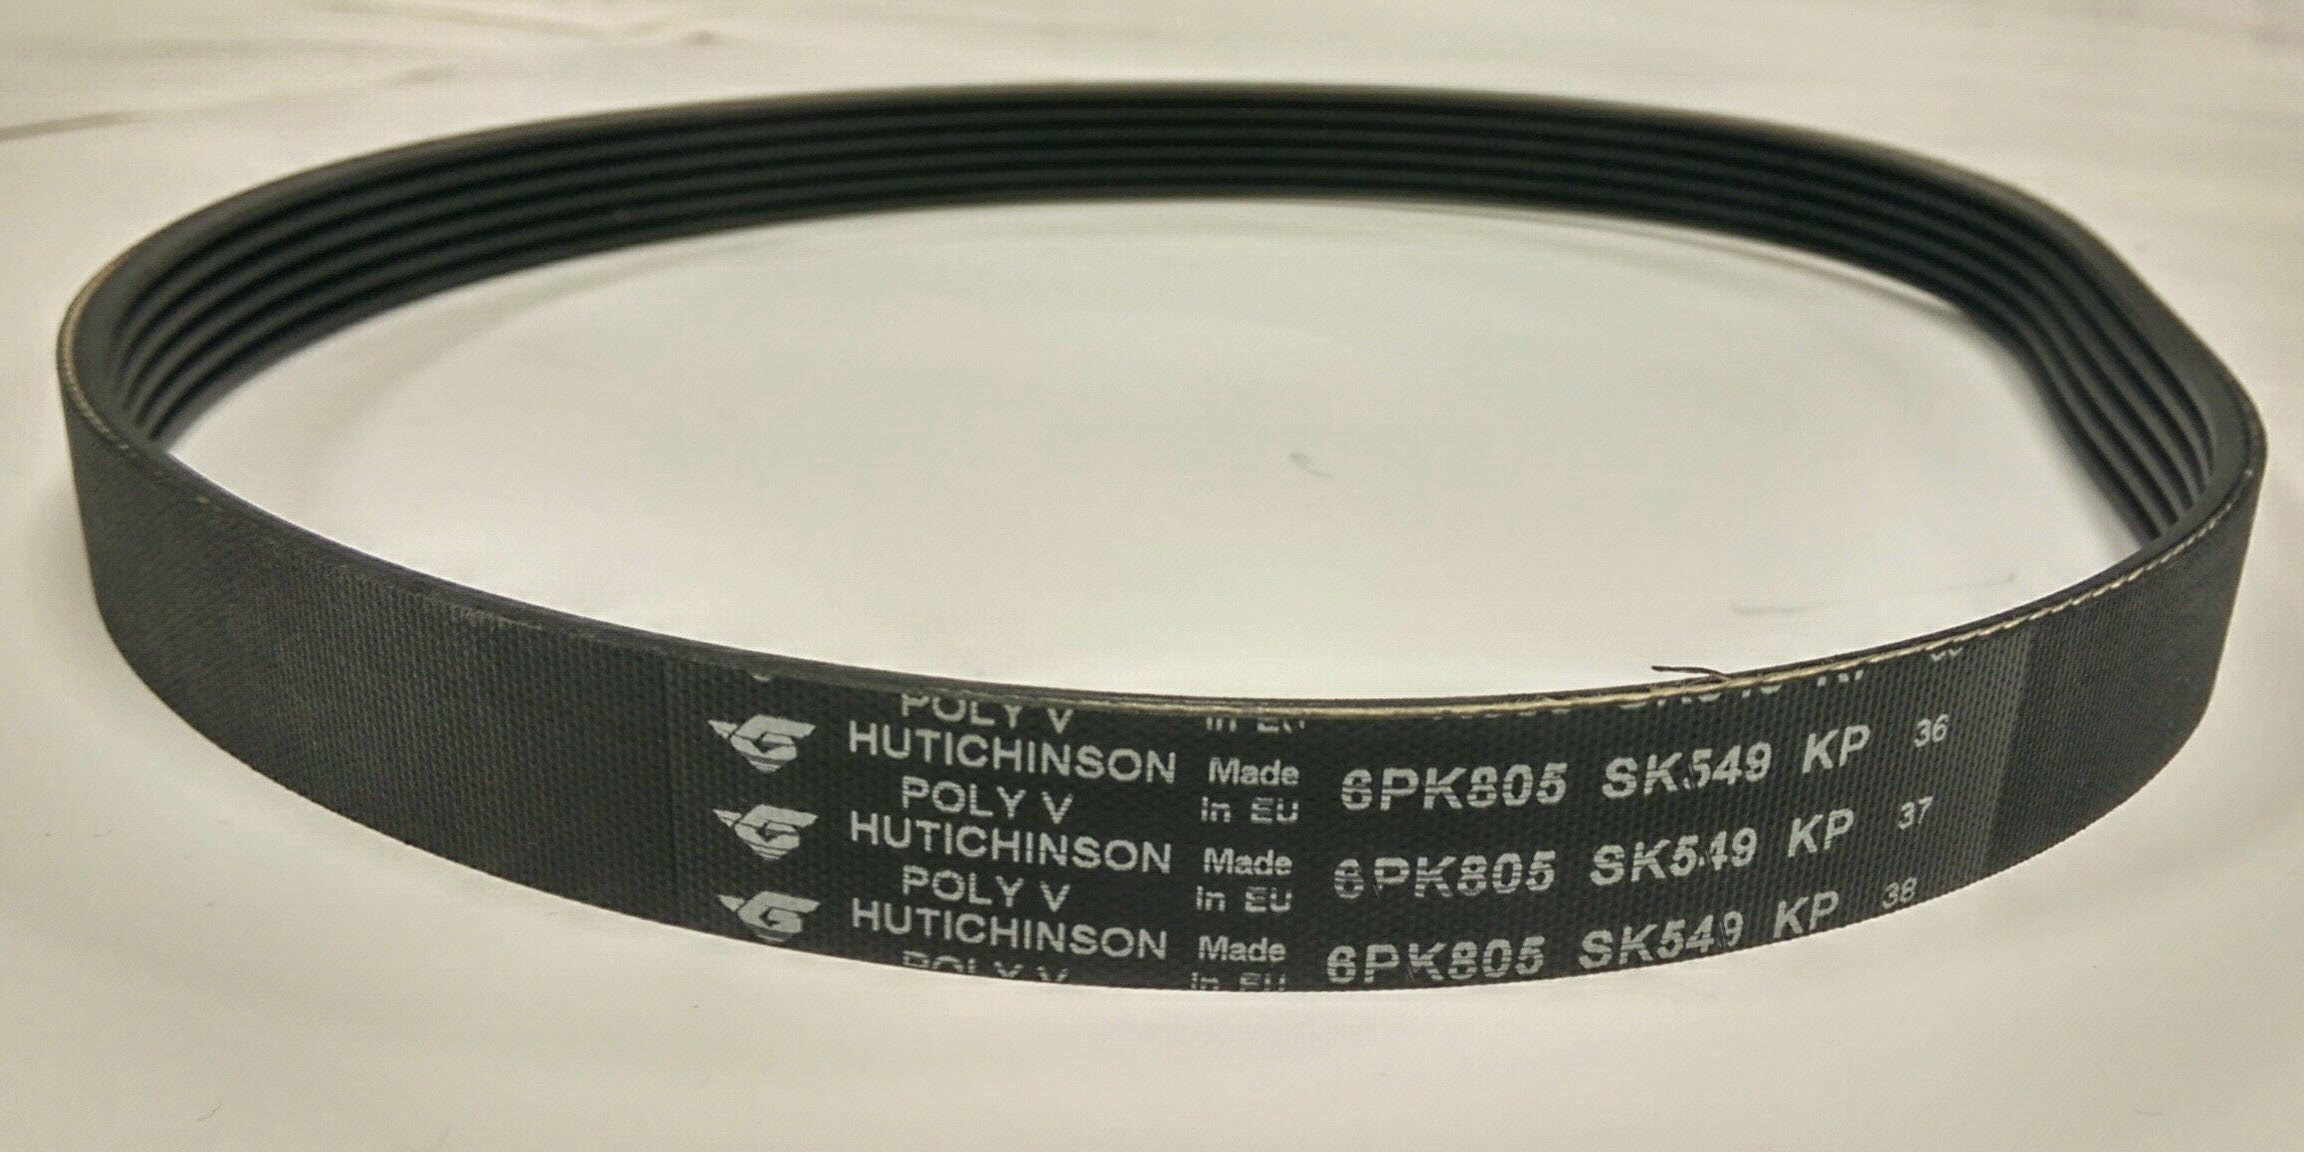 Rigmaster Part Number LG8-006